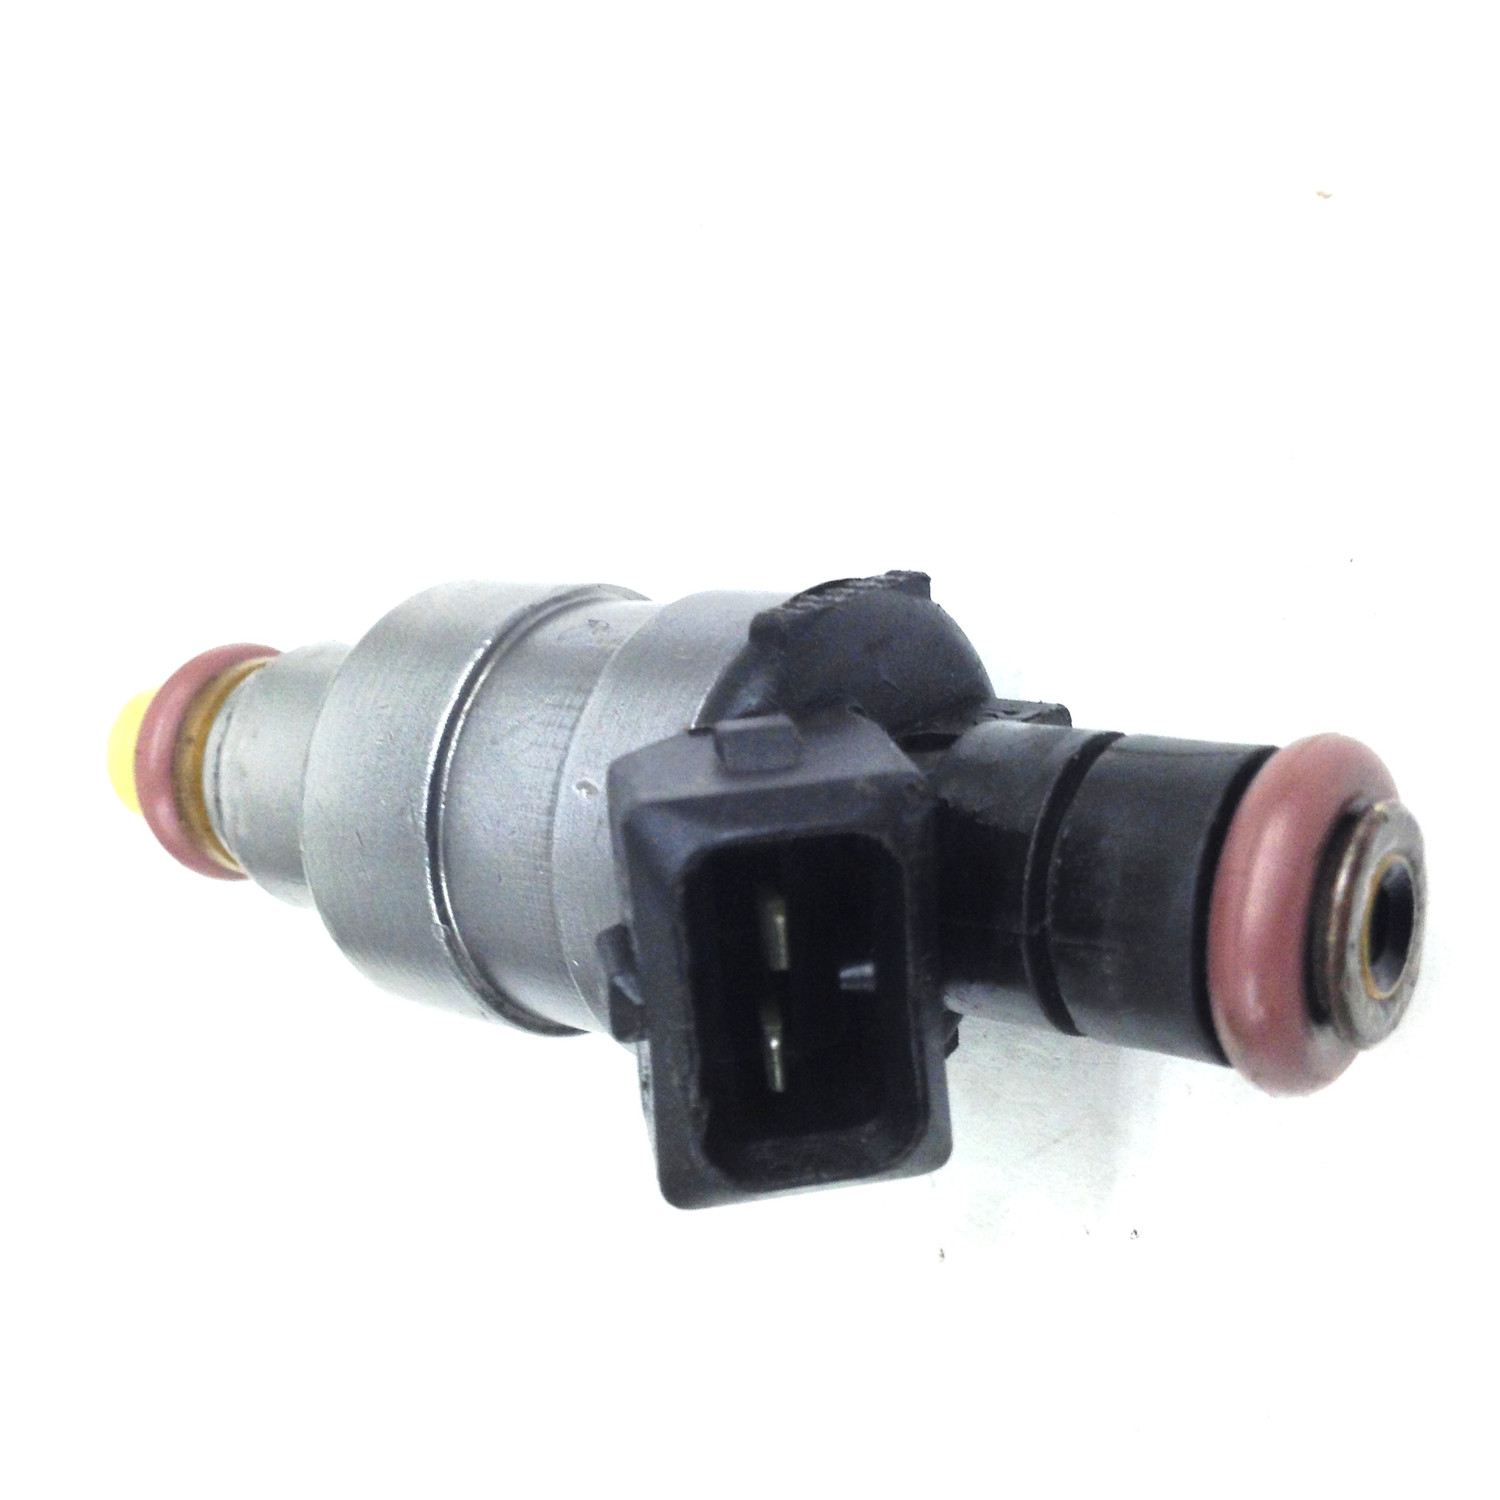 UNITED REMANUFACTURING CO - Fuel Injector - URC 2216